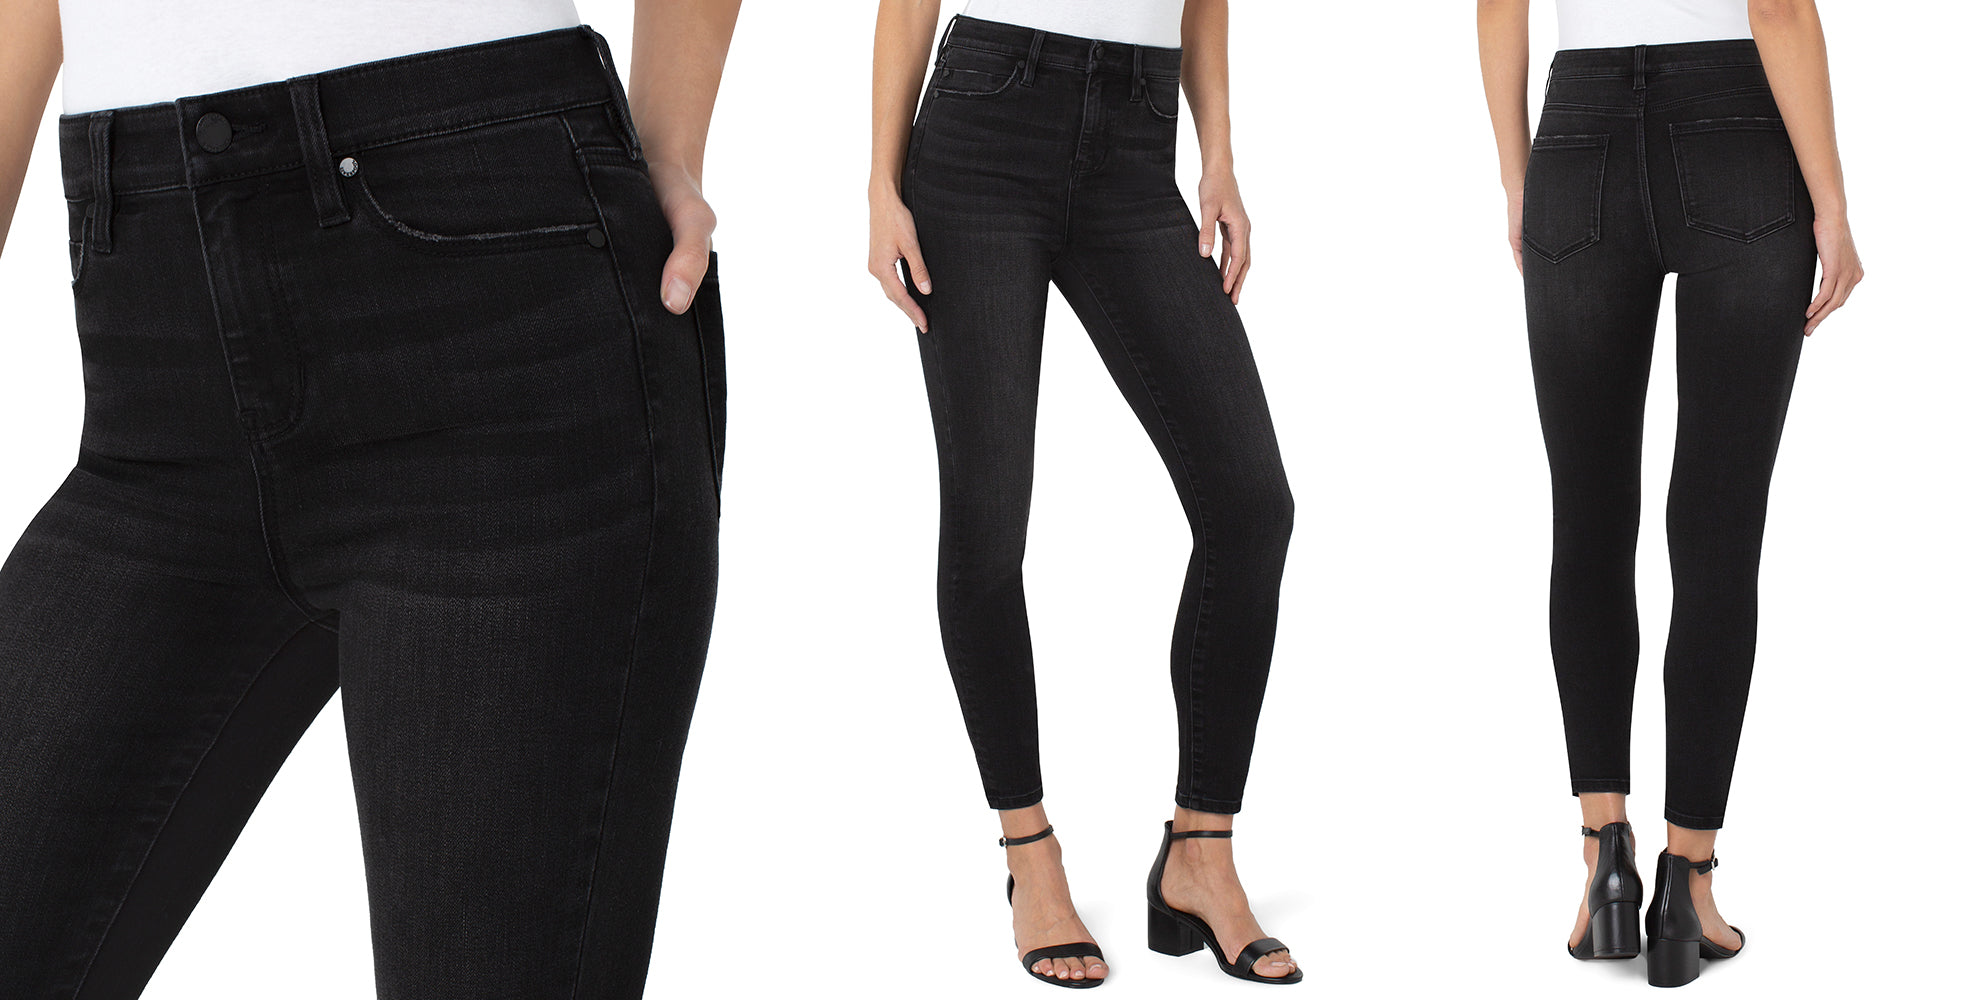 ECO ABBY HI-RISE ANKLE SKINNY - LIVERPOOL LOS ANGELES